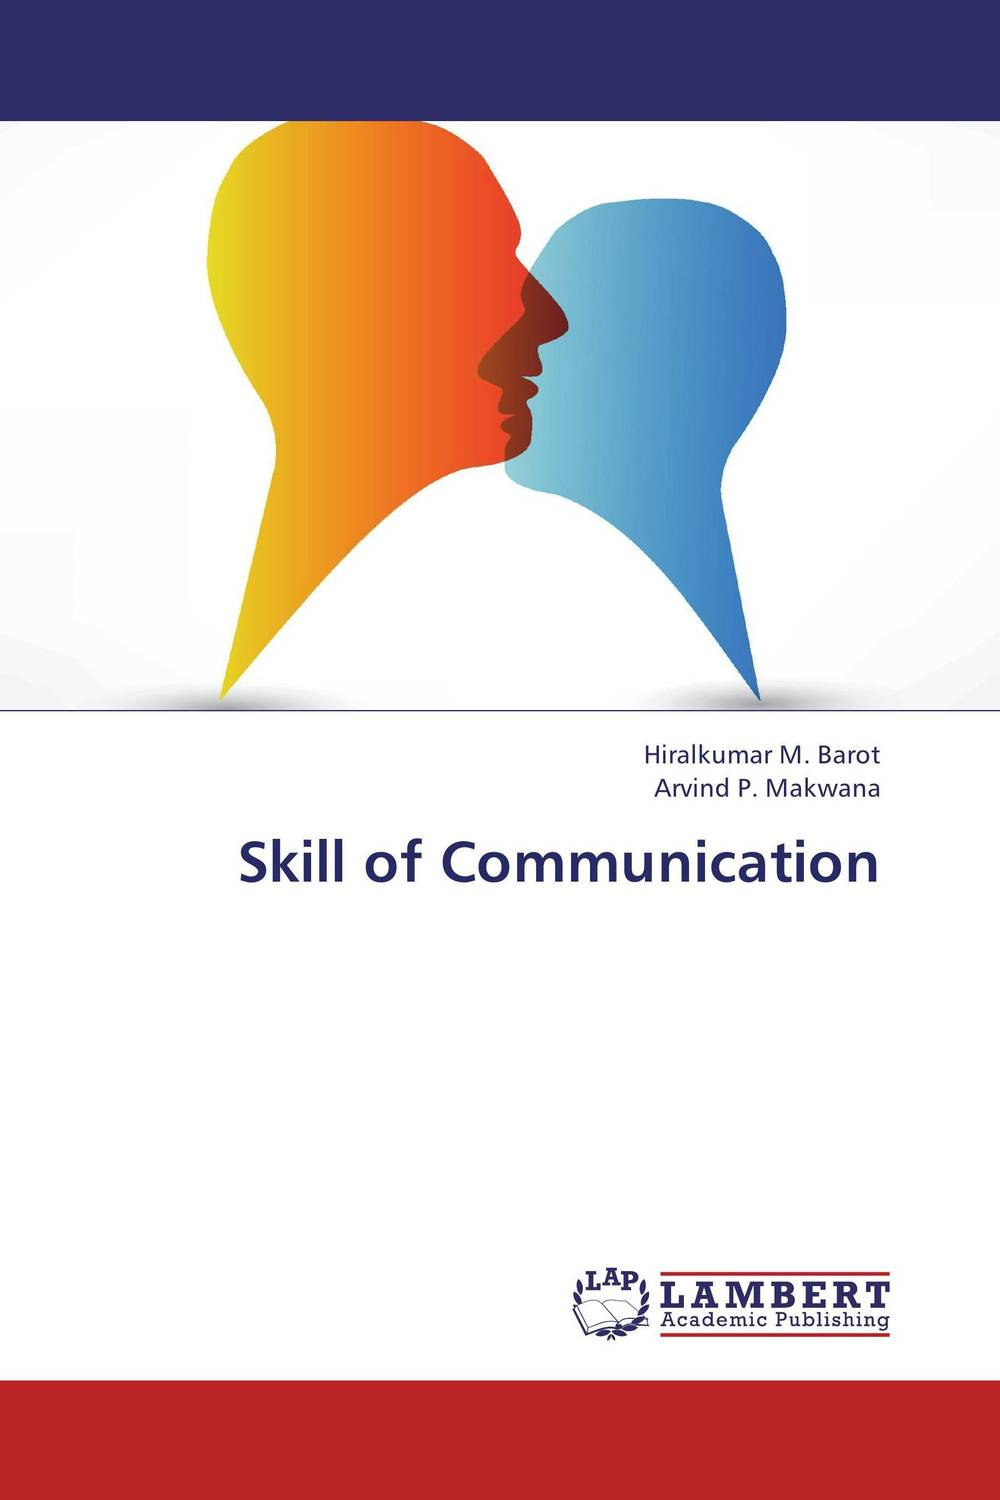 Skill of Communication